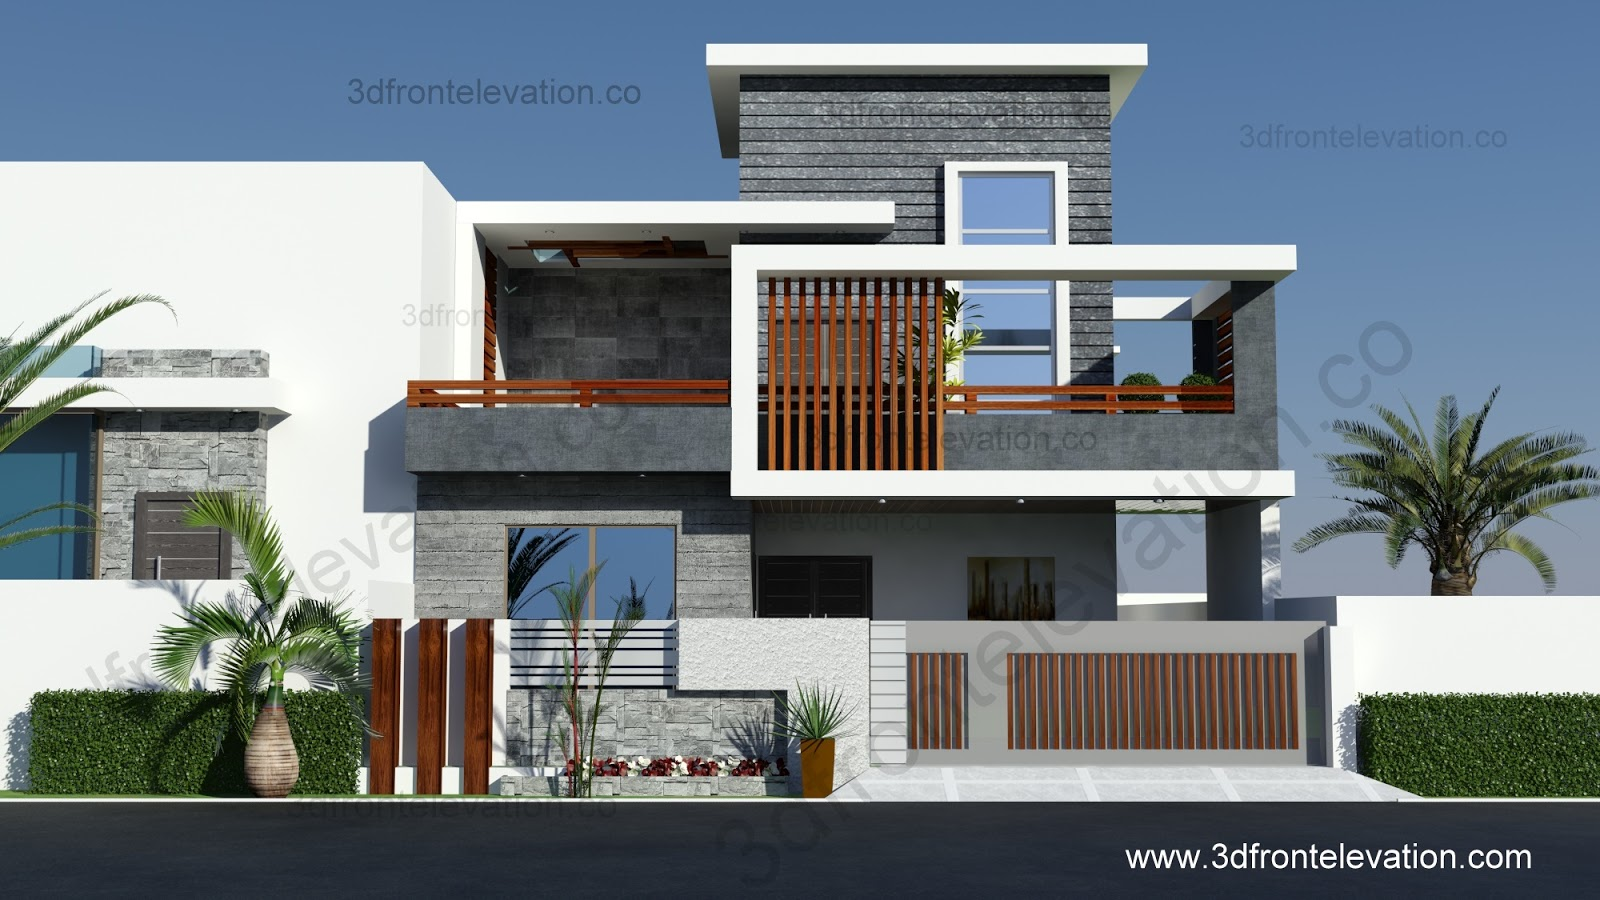 10 Marla Contemporary House Design 2016 3D Front Elevationcom